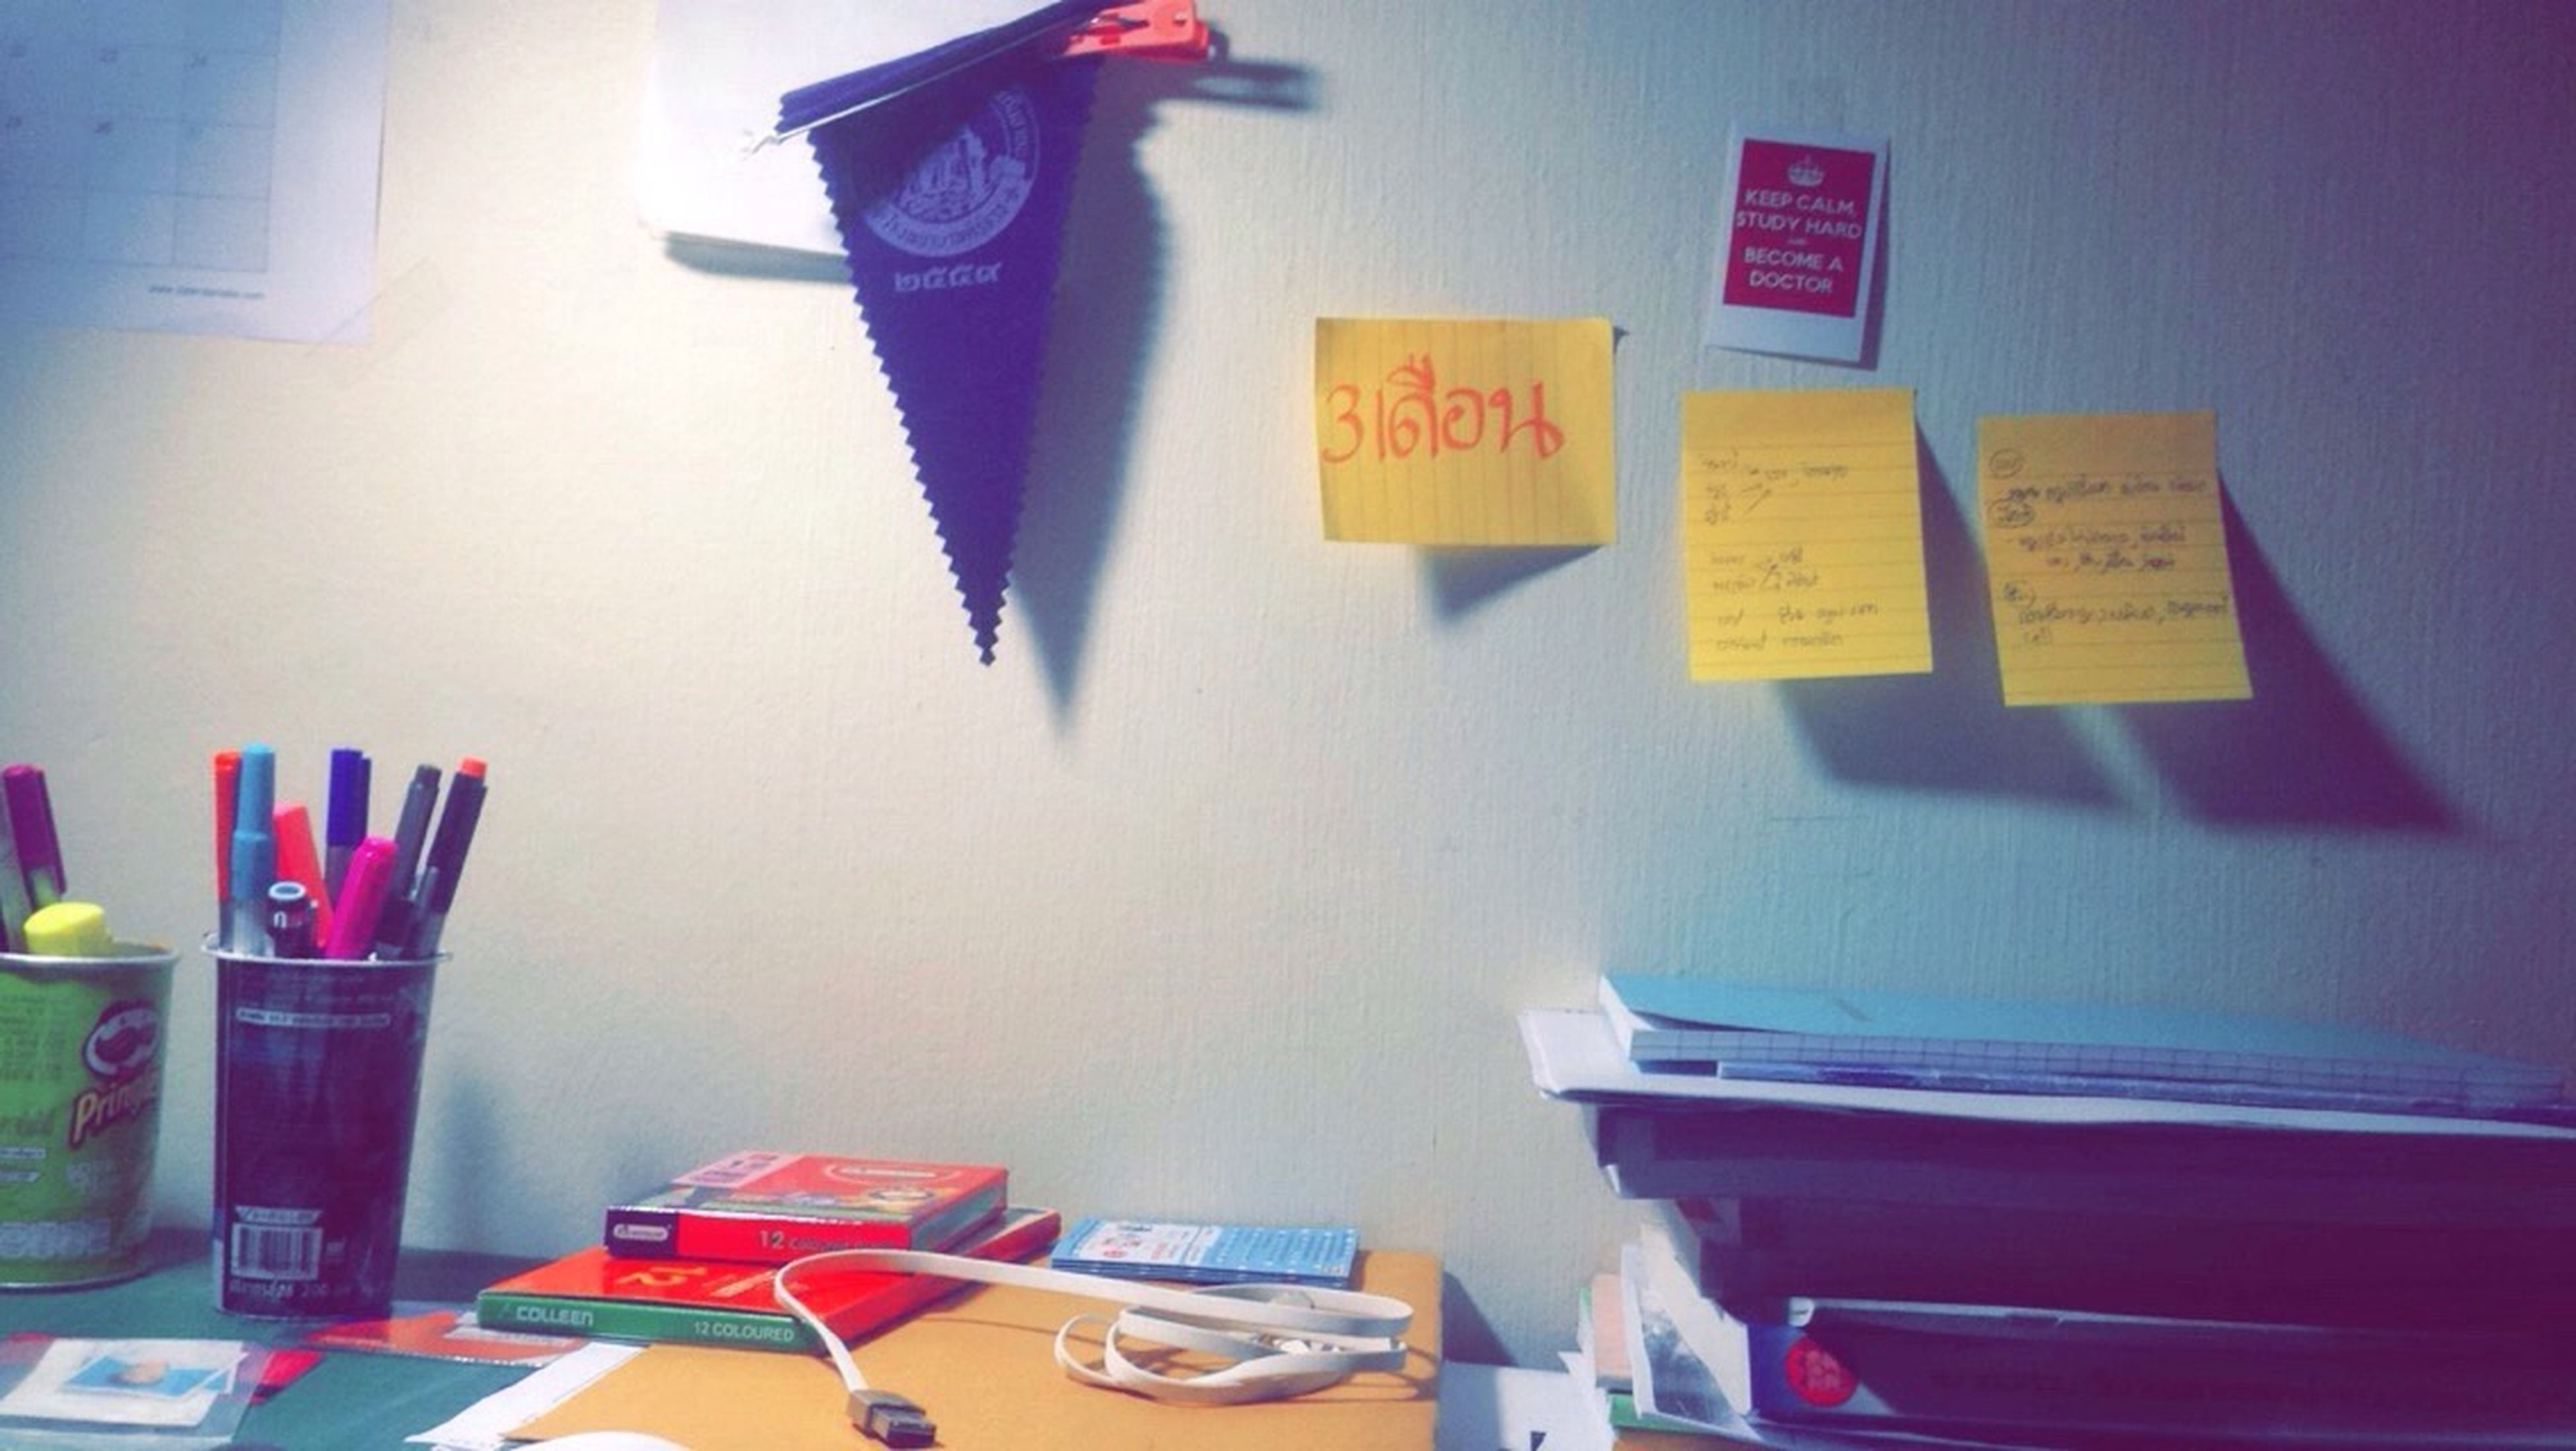 indoors, western script, communication, collection, text, identity, information sign, group of objects, arrangement, order, large group of objects, blue, multi colored, medium group of objects, choice, shelf, colors